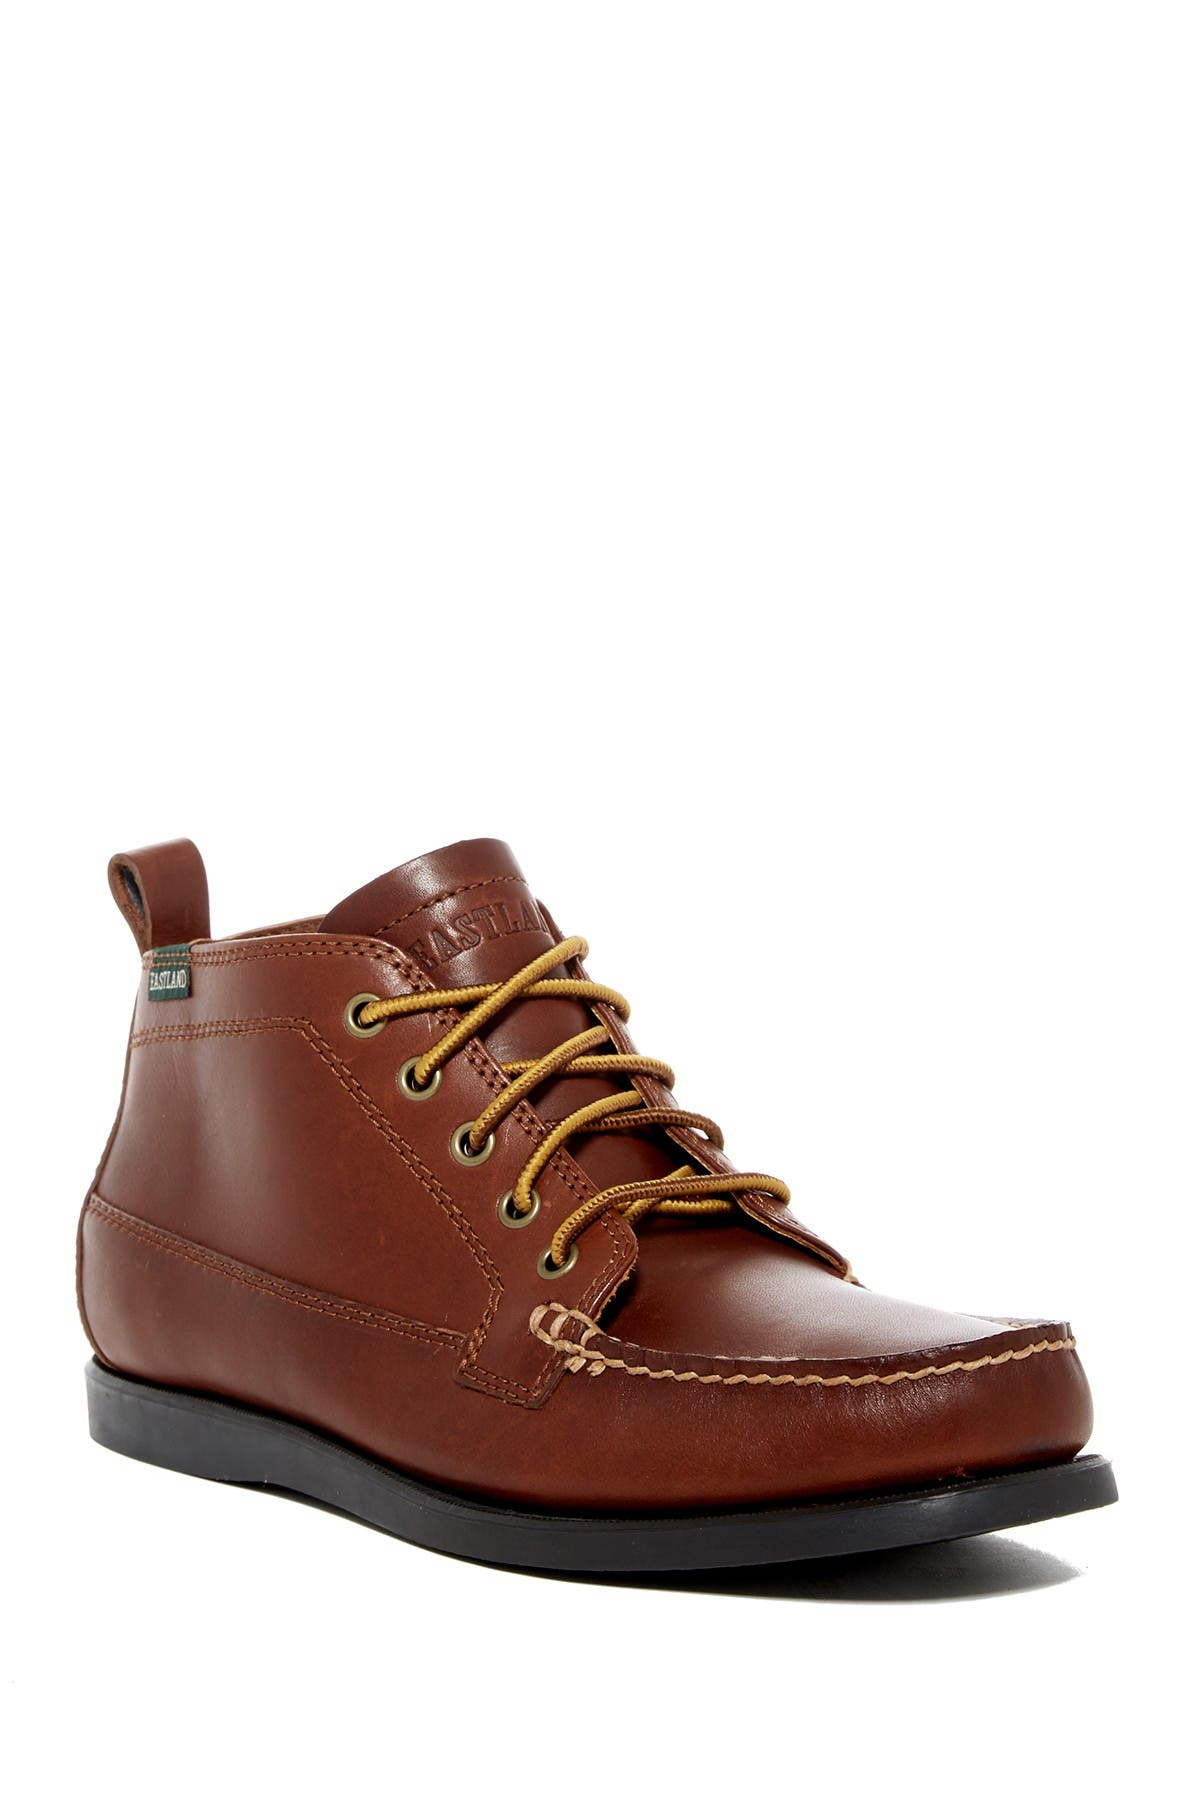 Image of Eastland Sturbridge Leather Chukka Boot - Wide Width Available